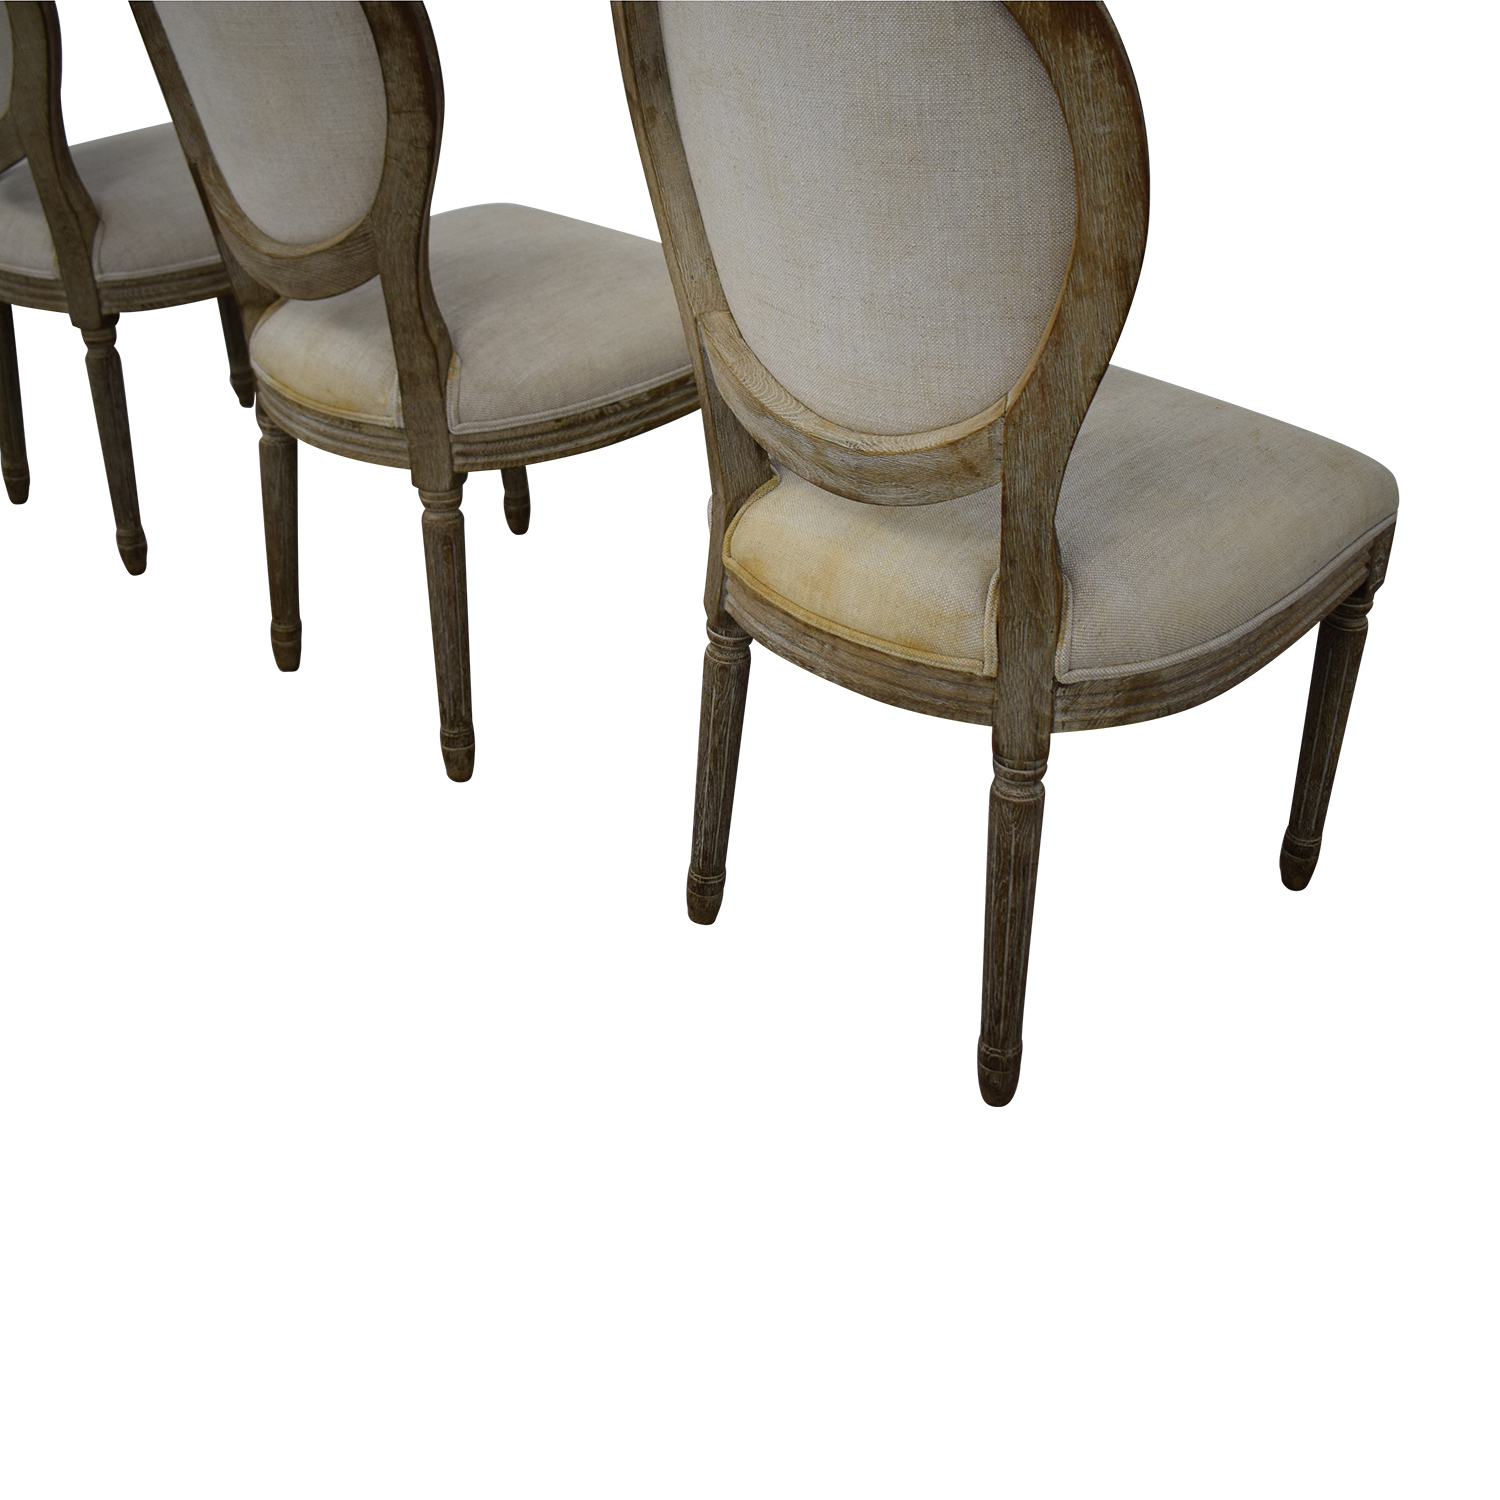 buy Restoration Hardware Vintage French Round Chair Restoration Hardware Dining Chairs